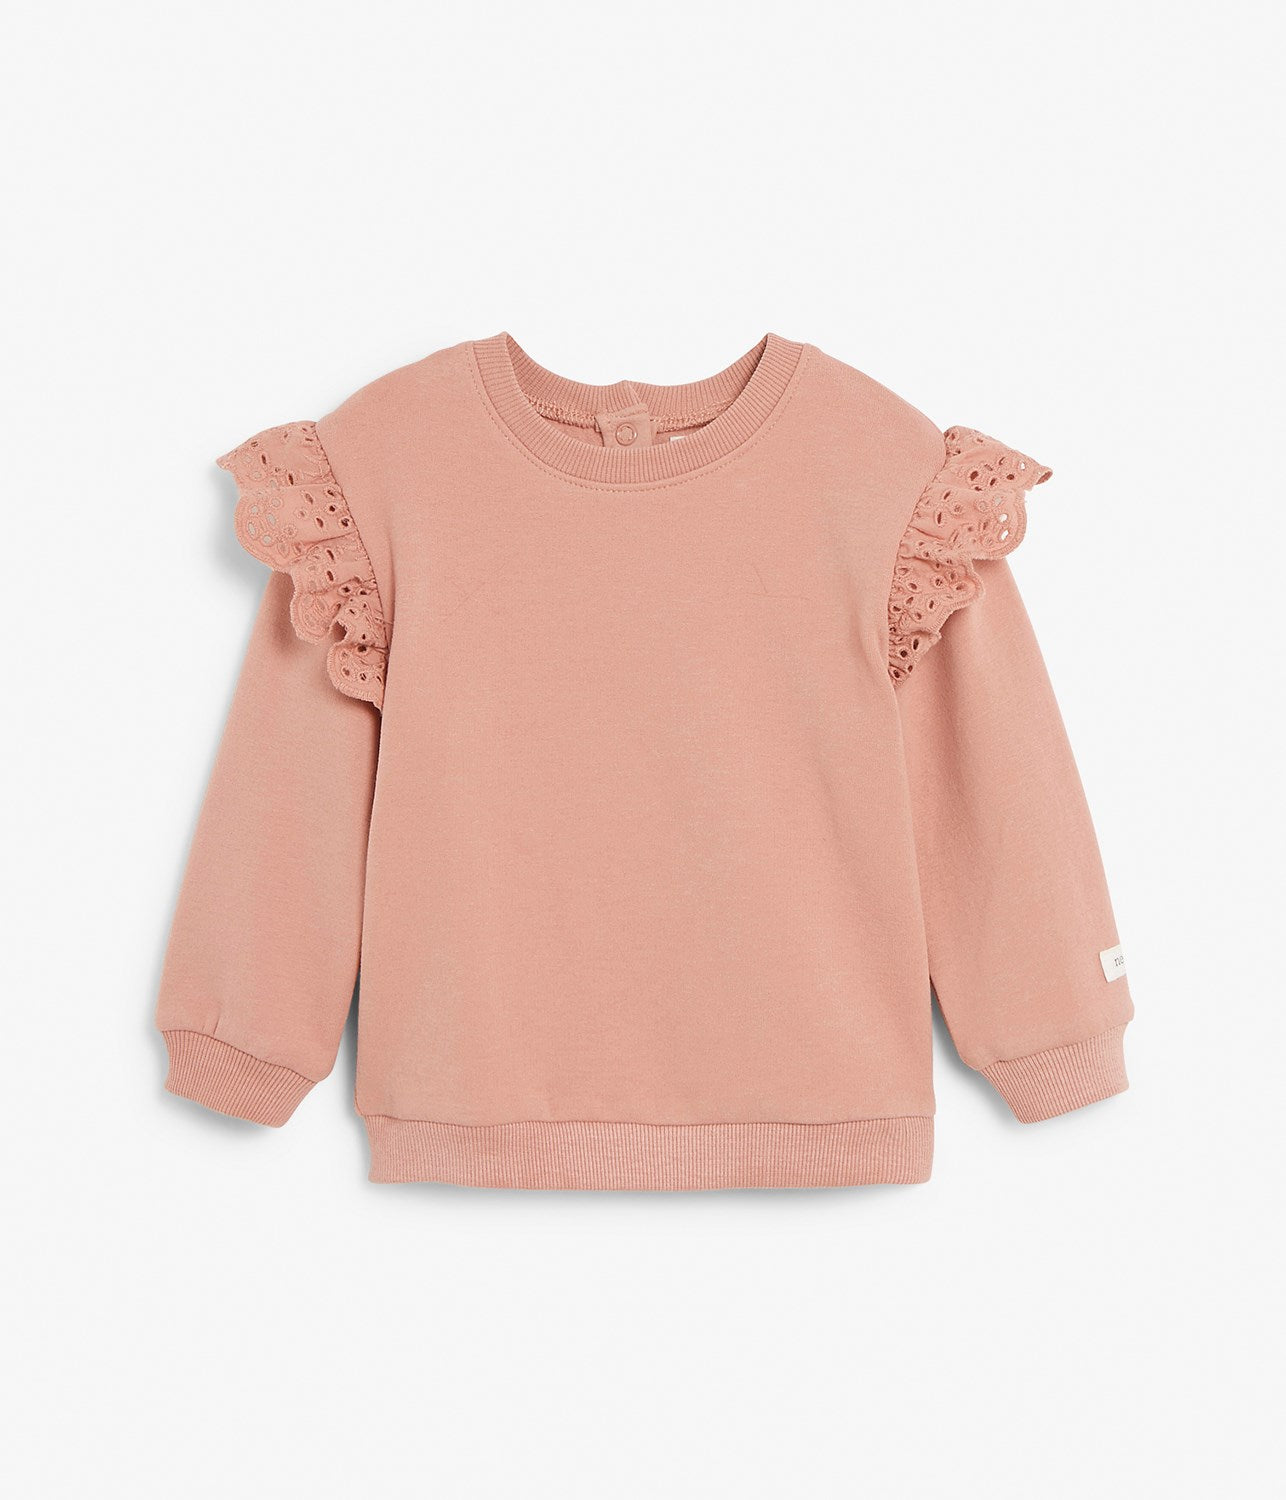 Baby pink sweater with frills